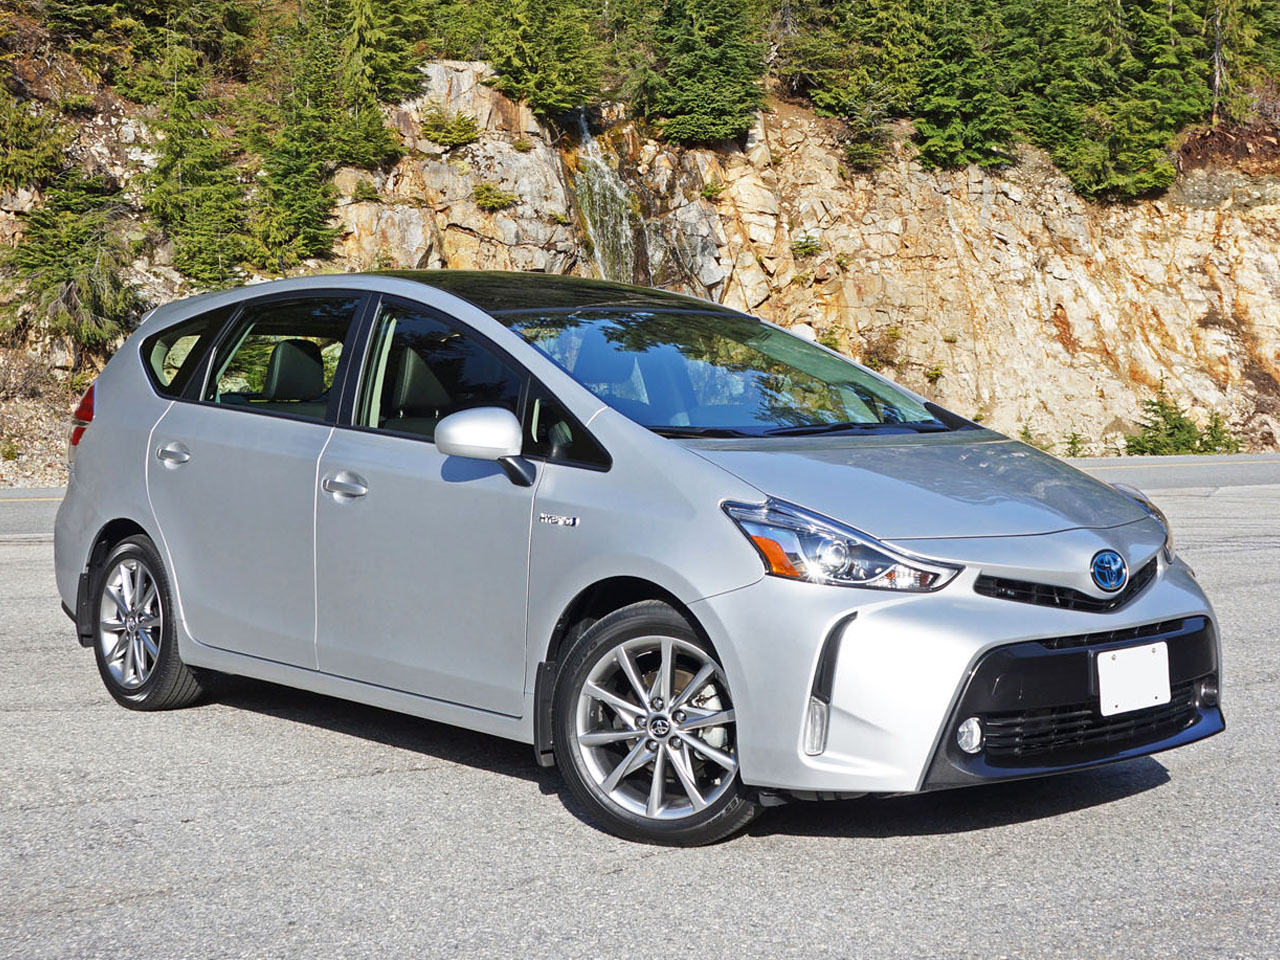 2015 toyota prius v technology road test review carcostcanada. Black Bedroom Furniture Sets. Home Design Ideas